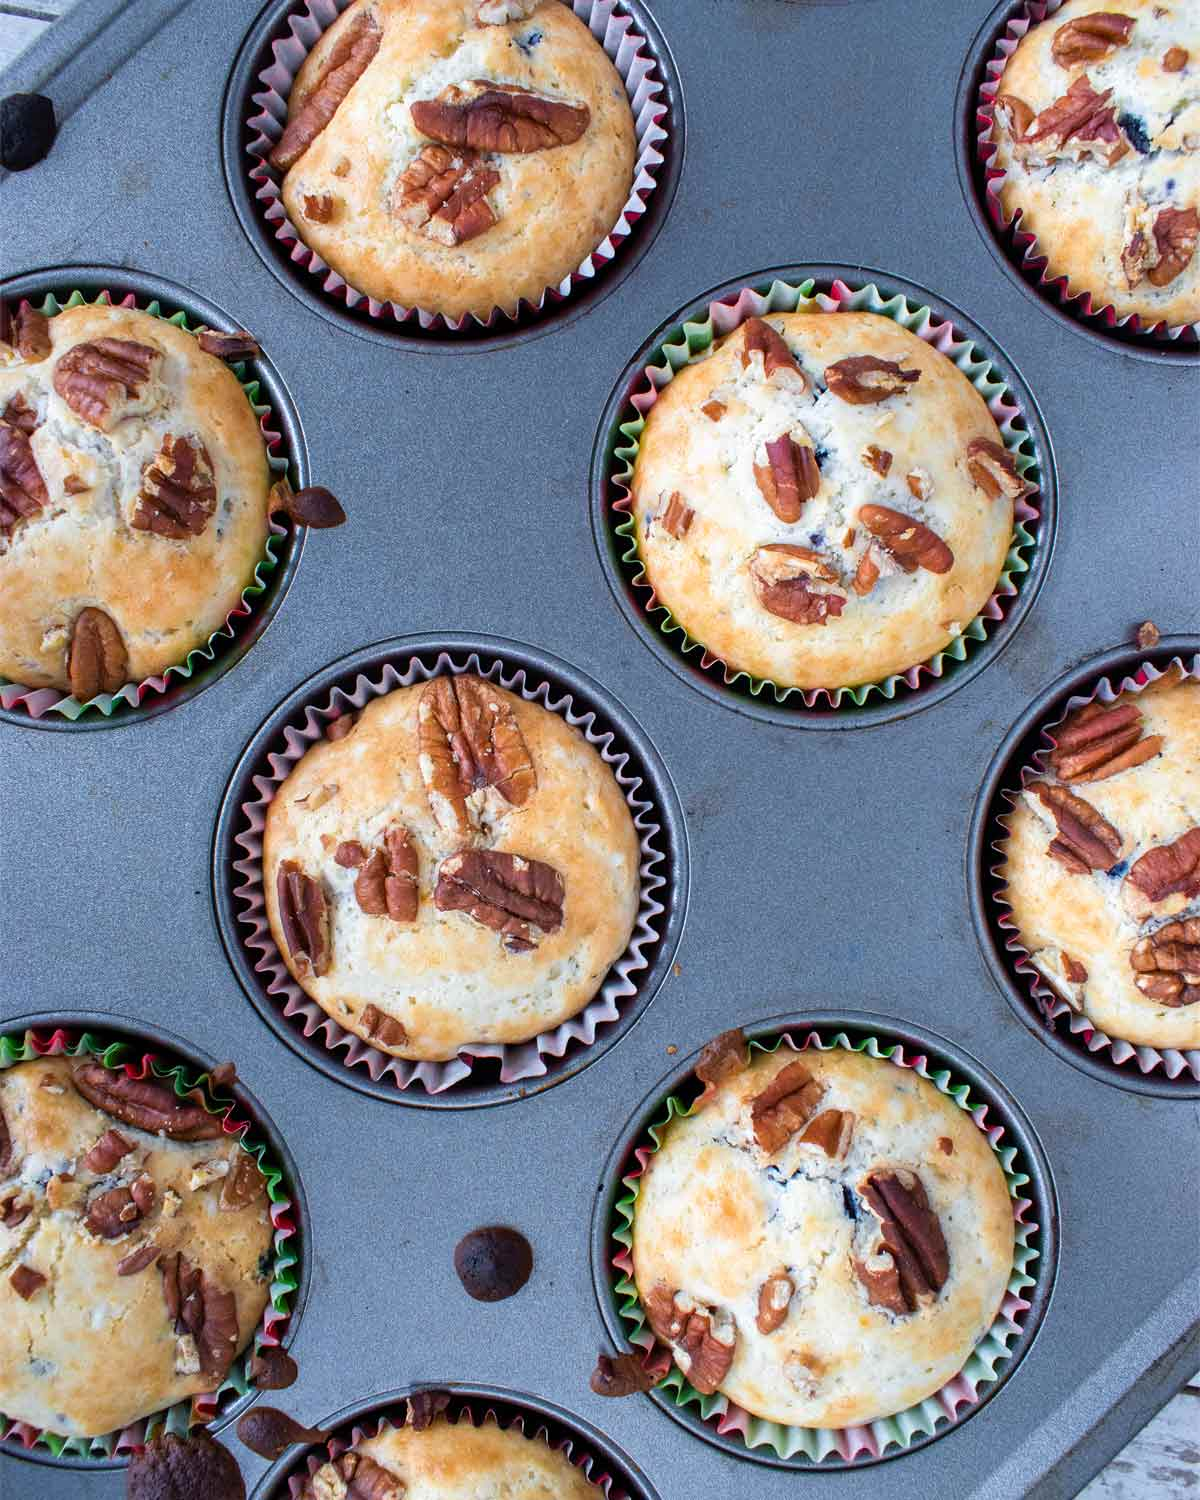 Baked blueberry pecan muffins in a muffin tin.